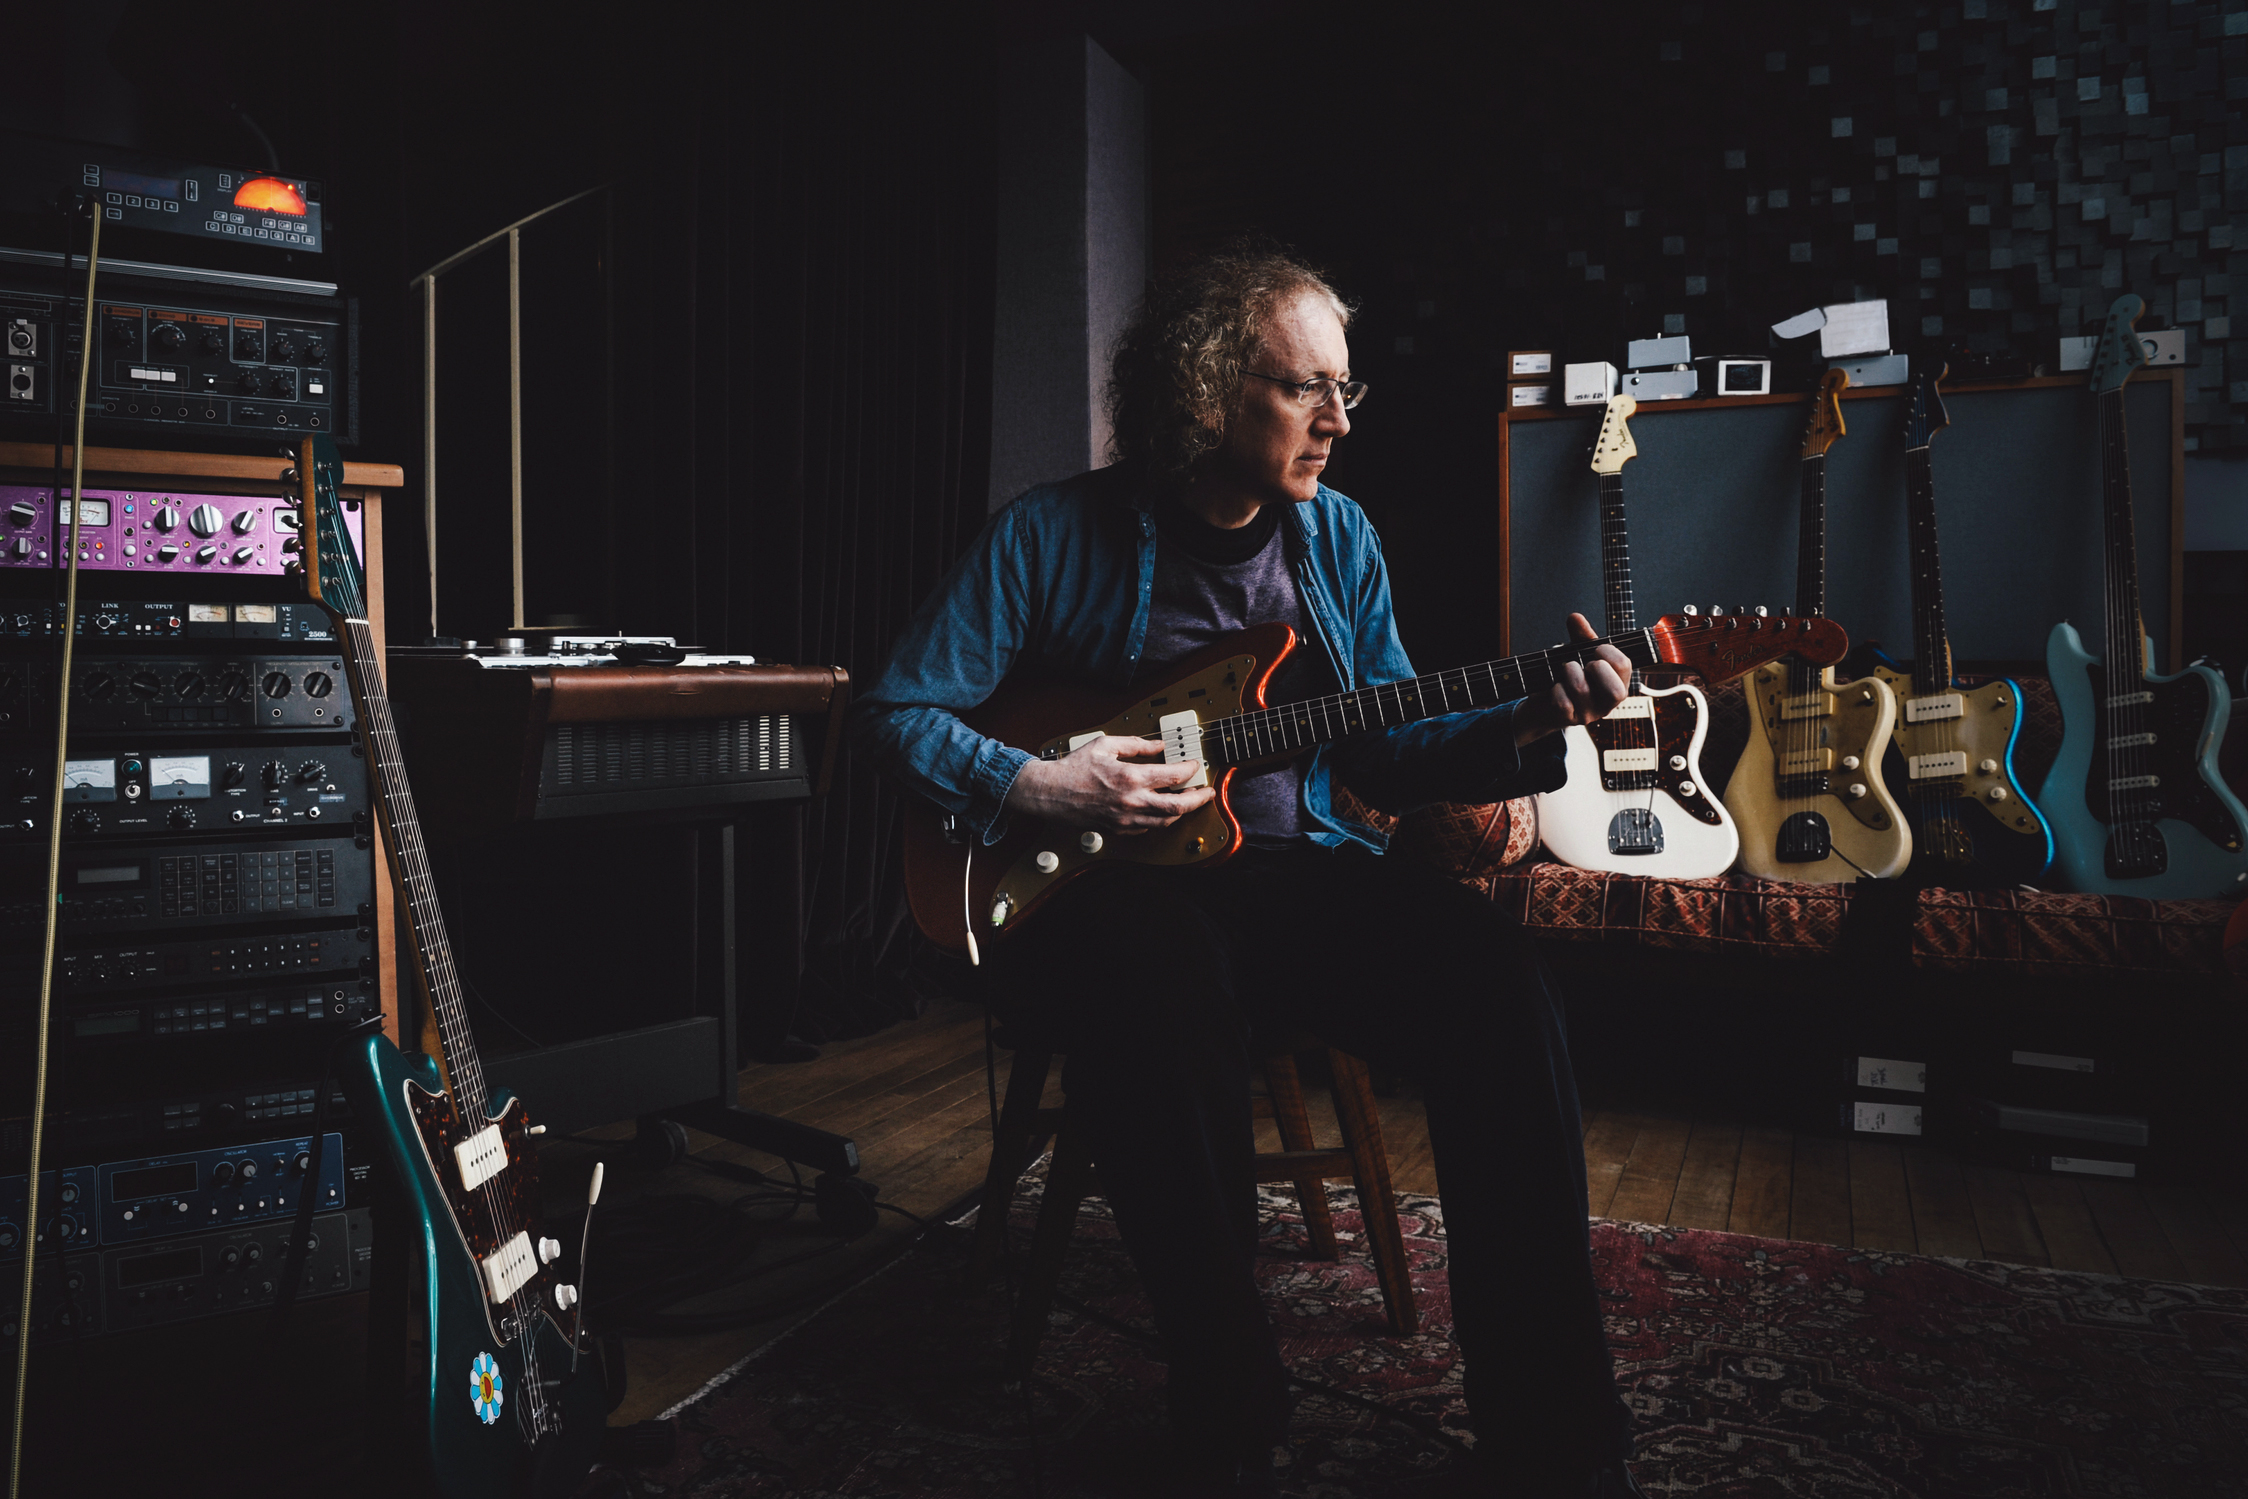 8e2f797039 My Bloody Valentine's Kevin Shields: The Guitar That Changed My Life –  Rolling Stone